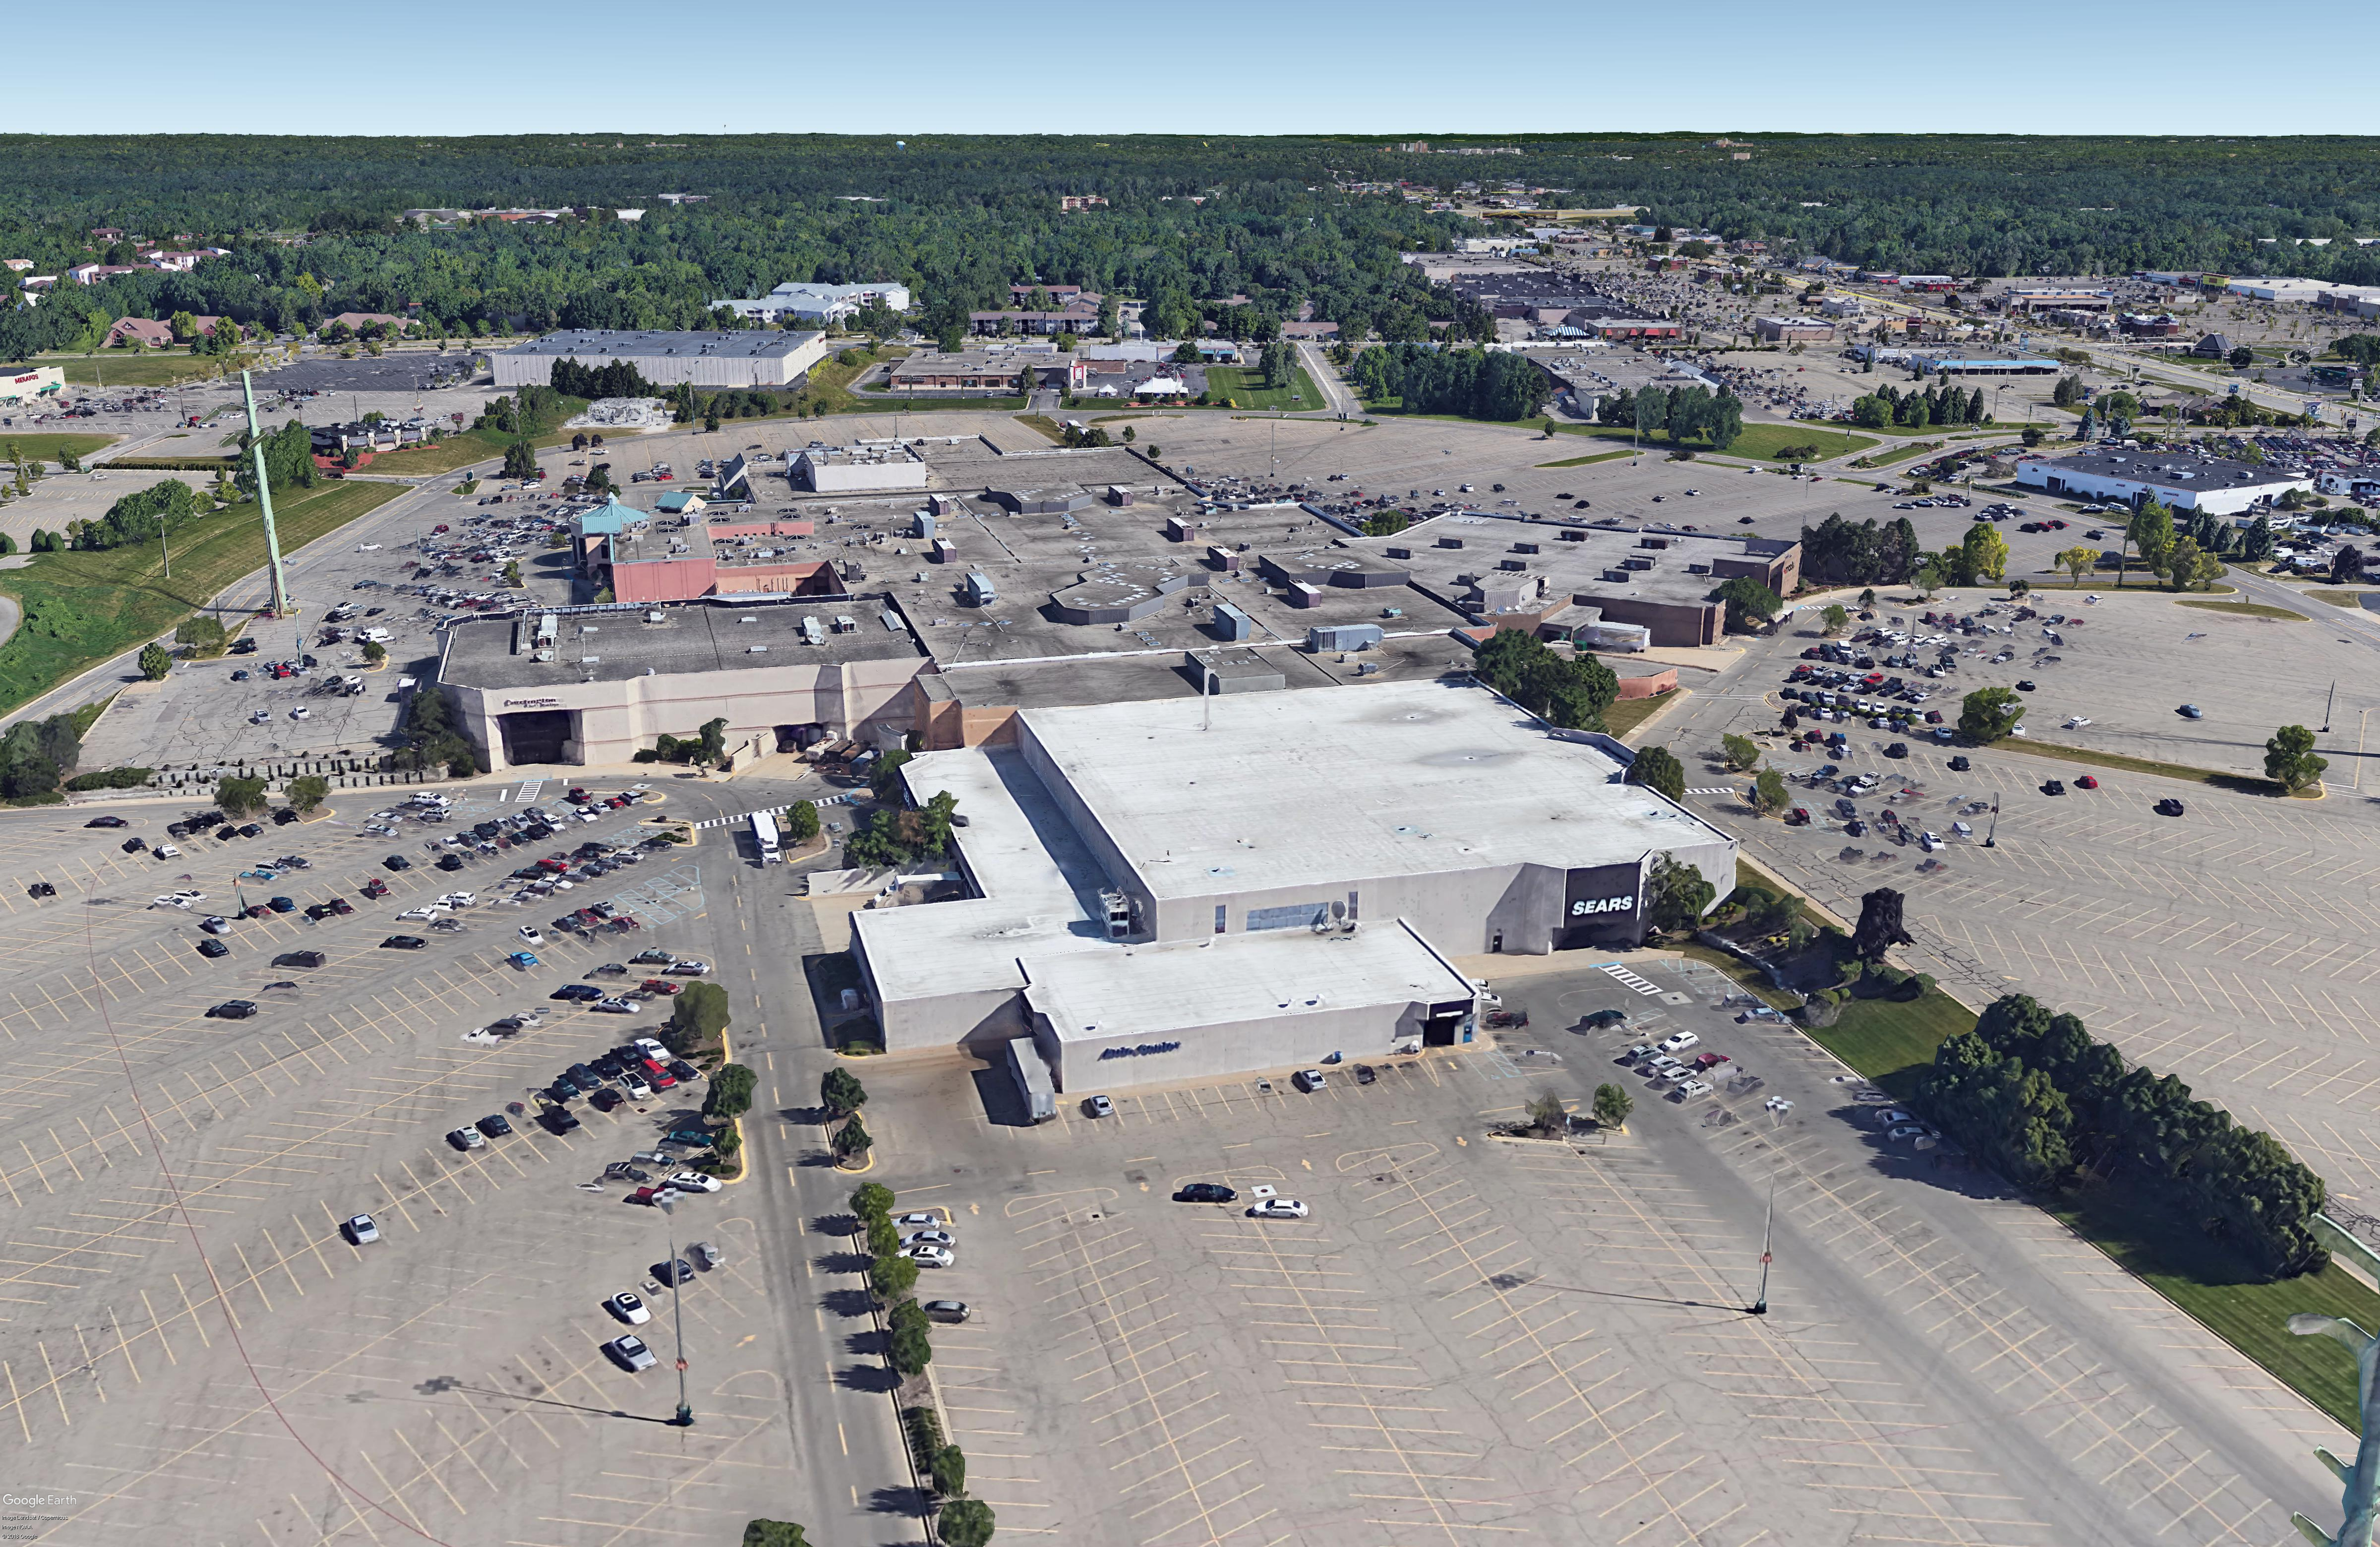 6780 S. Westnedge Ave., Portage, Michigan 49024, ,Retail,For Sale,The Crossroads Mall,6780 S. Westnedge Ave.,1034